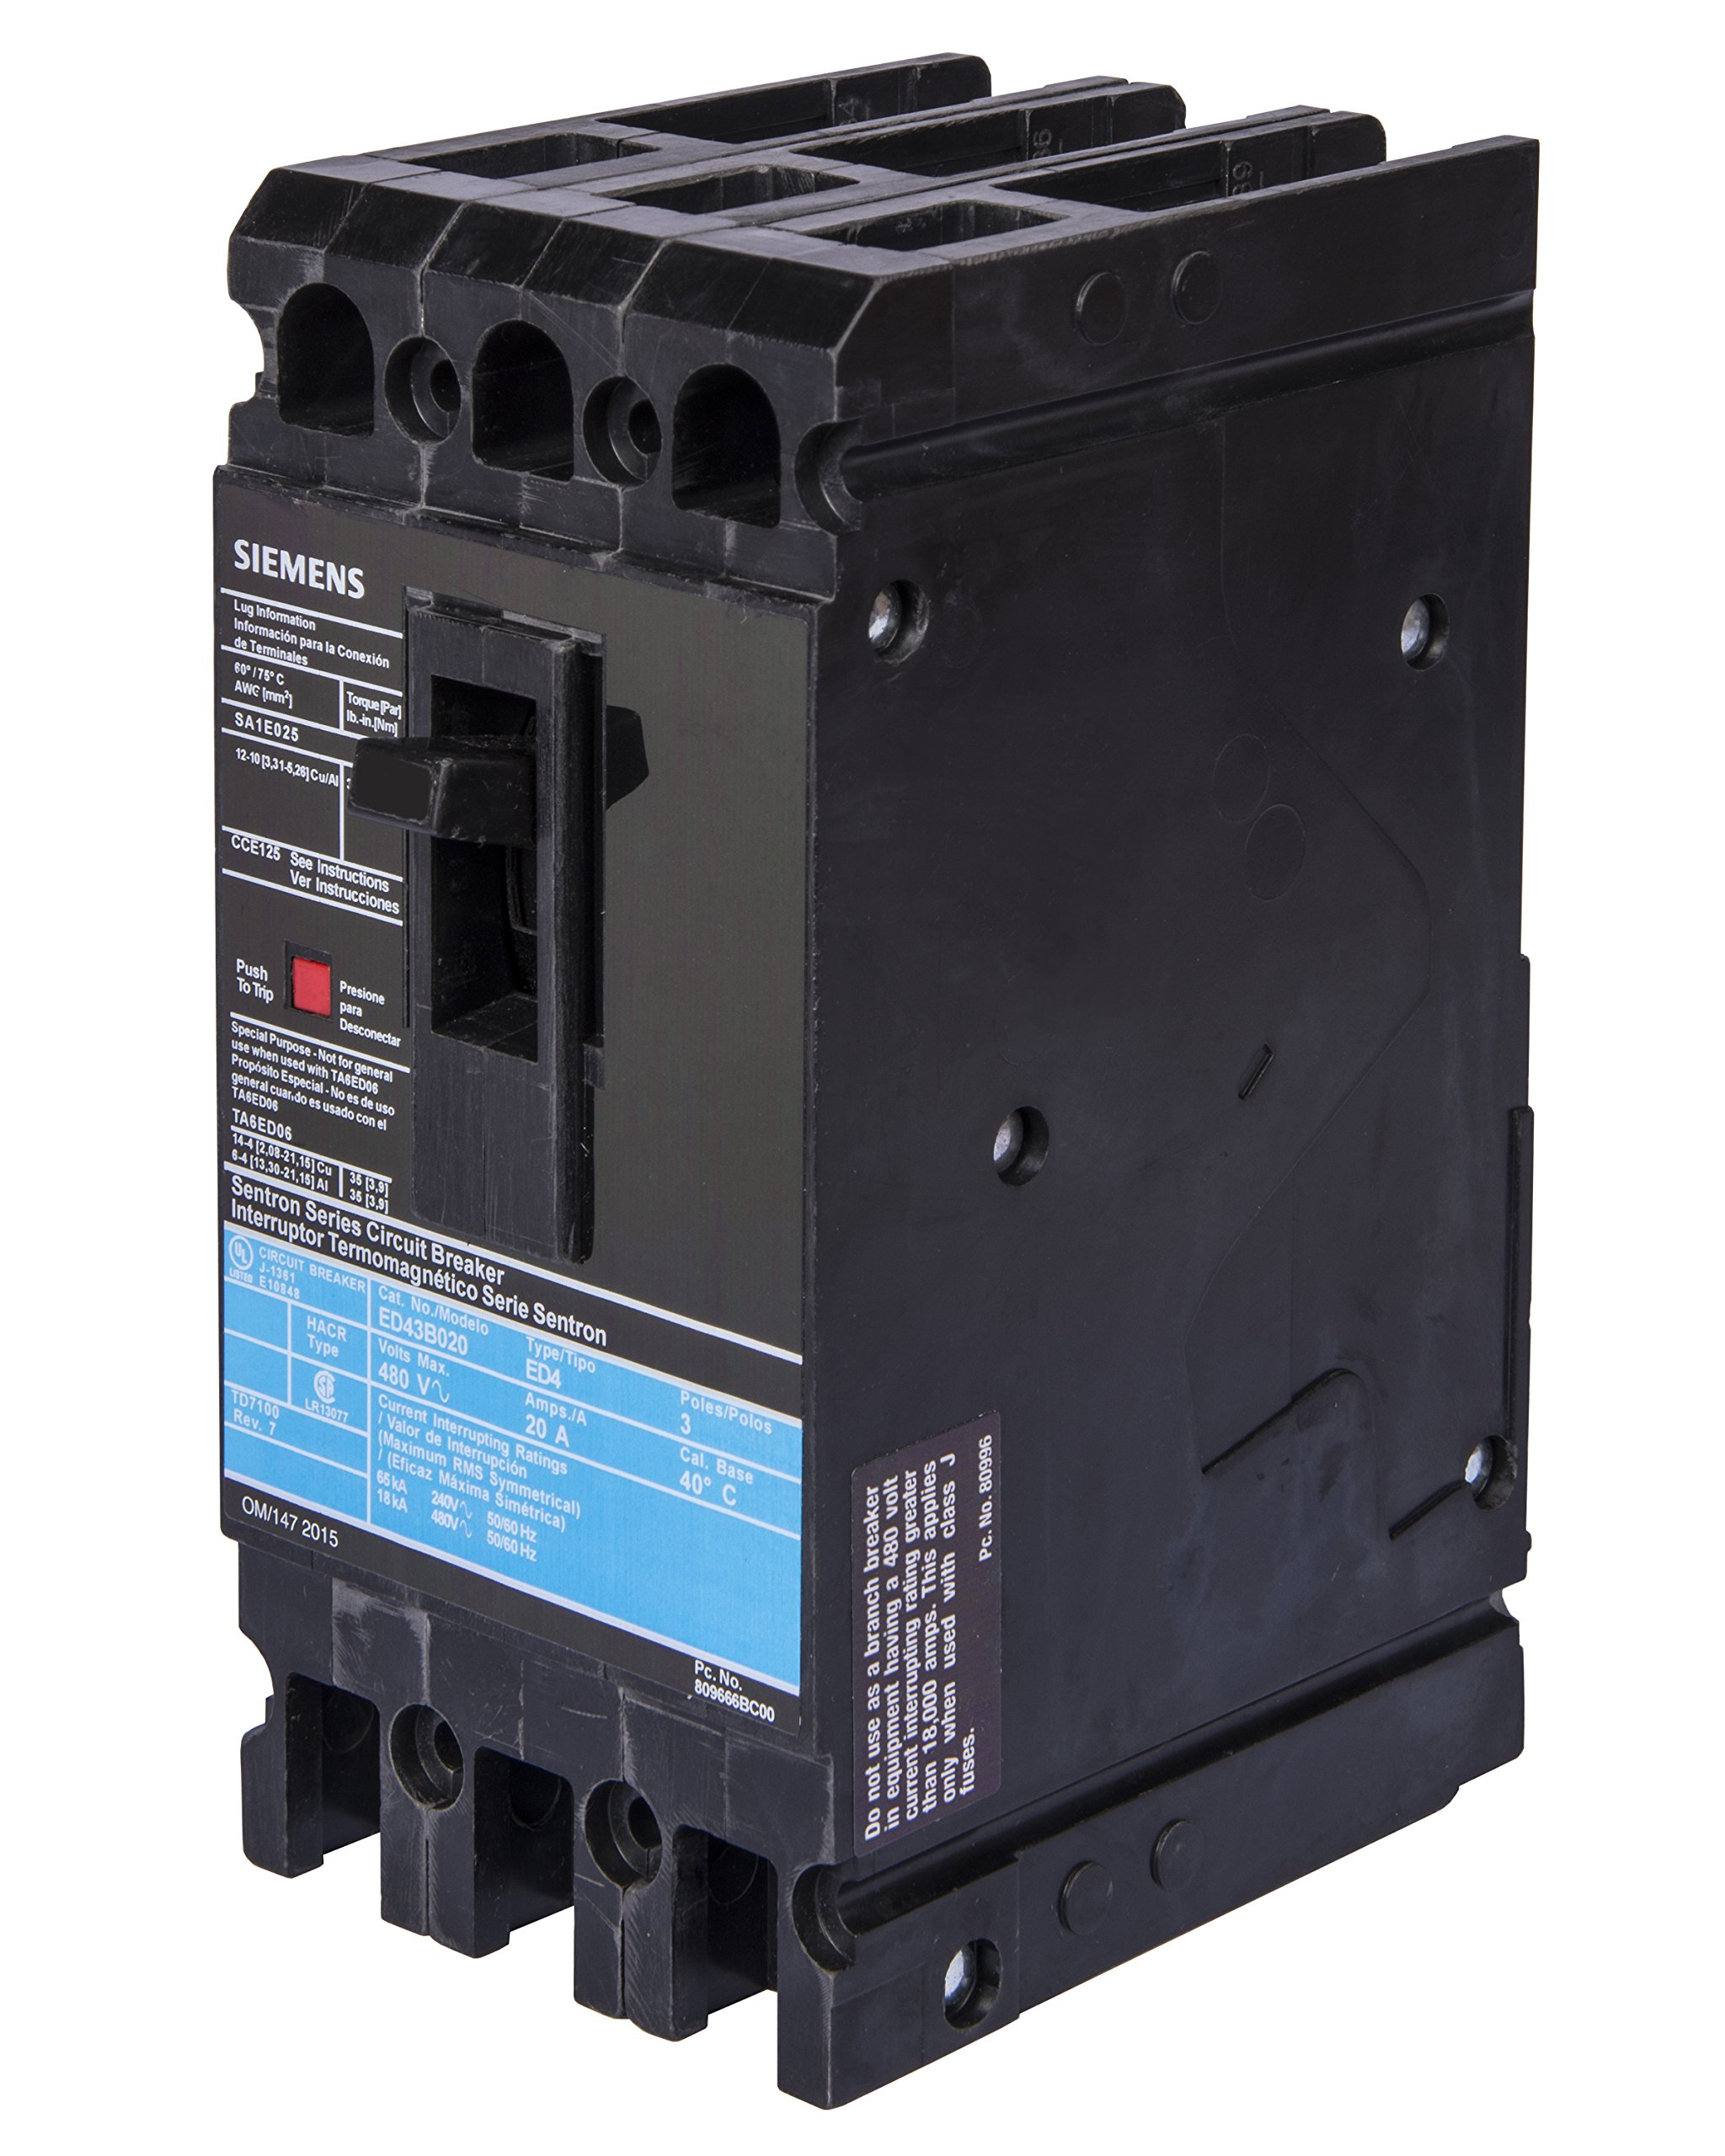 Siemens ED43B015 Circuit Breaker, Type ED4, 15 Amp, 3 Pole by SIEMENS